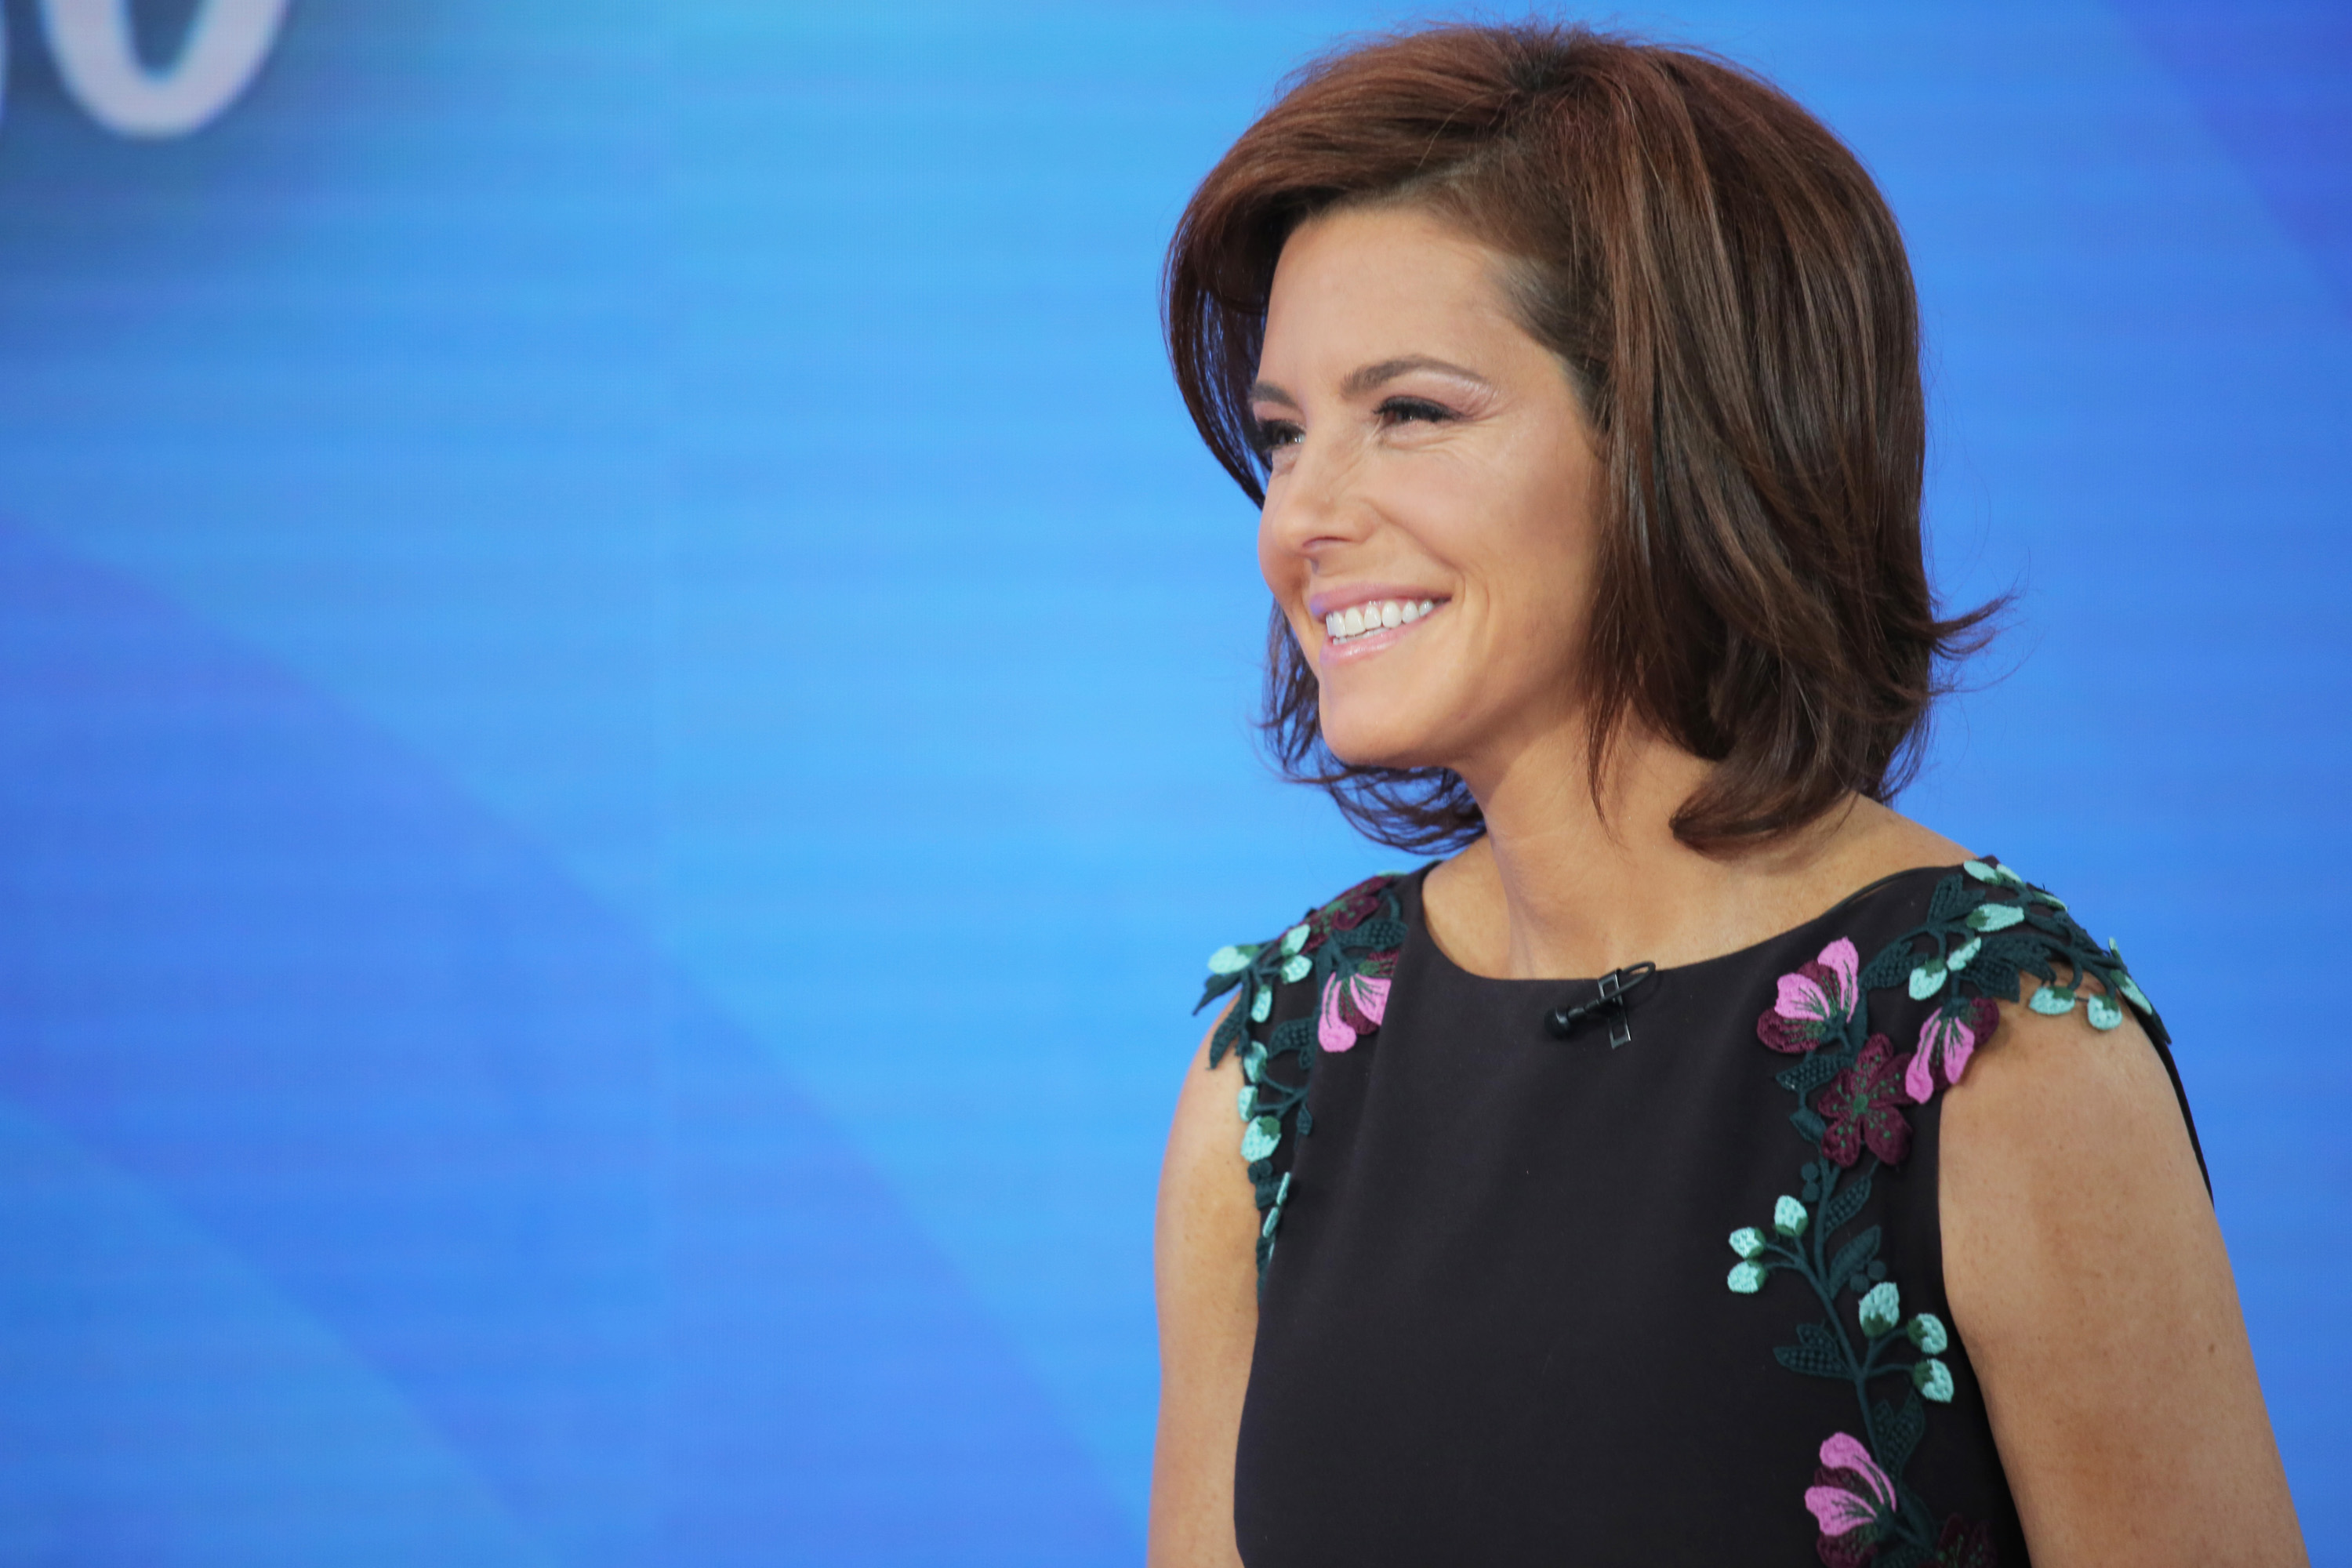 Stephanie Ruhle, Halloween, 2020, Msnbc Stephanie Ruhle lands big NBC News business role